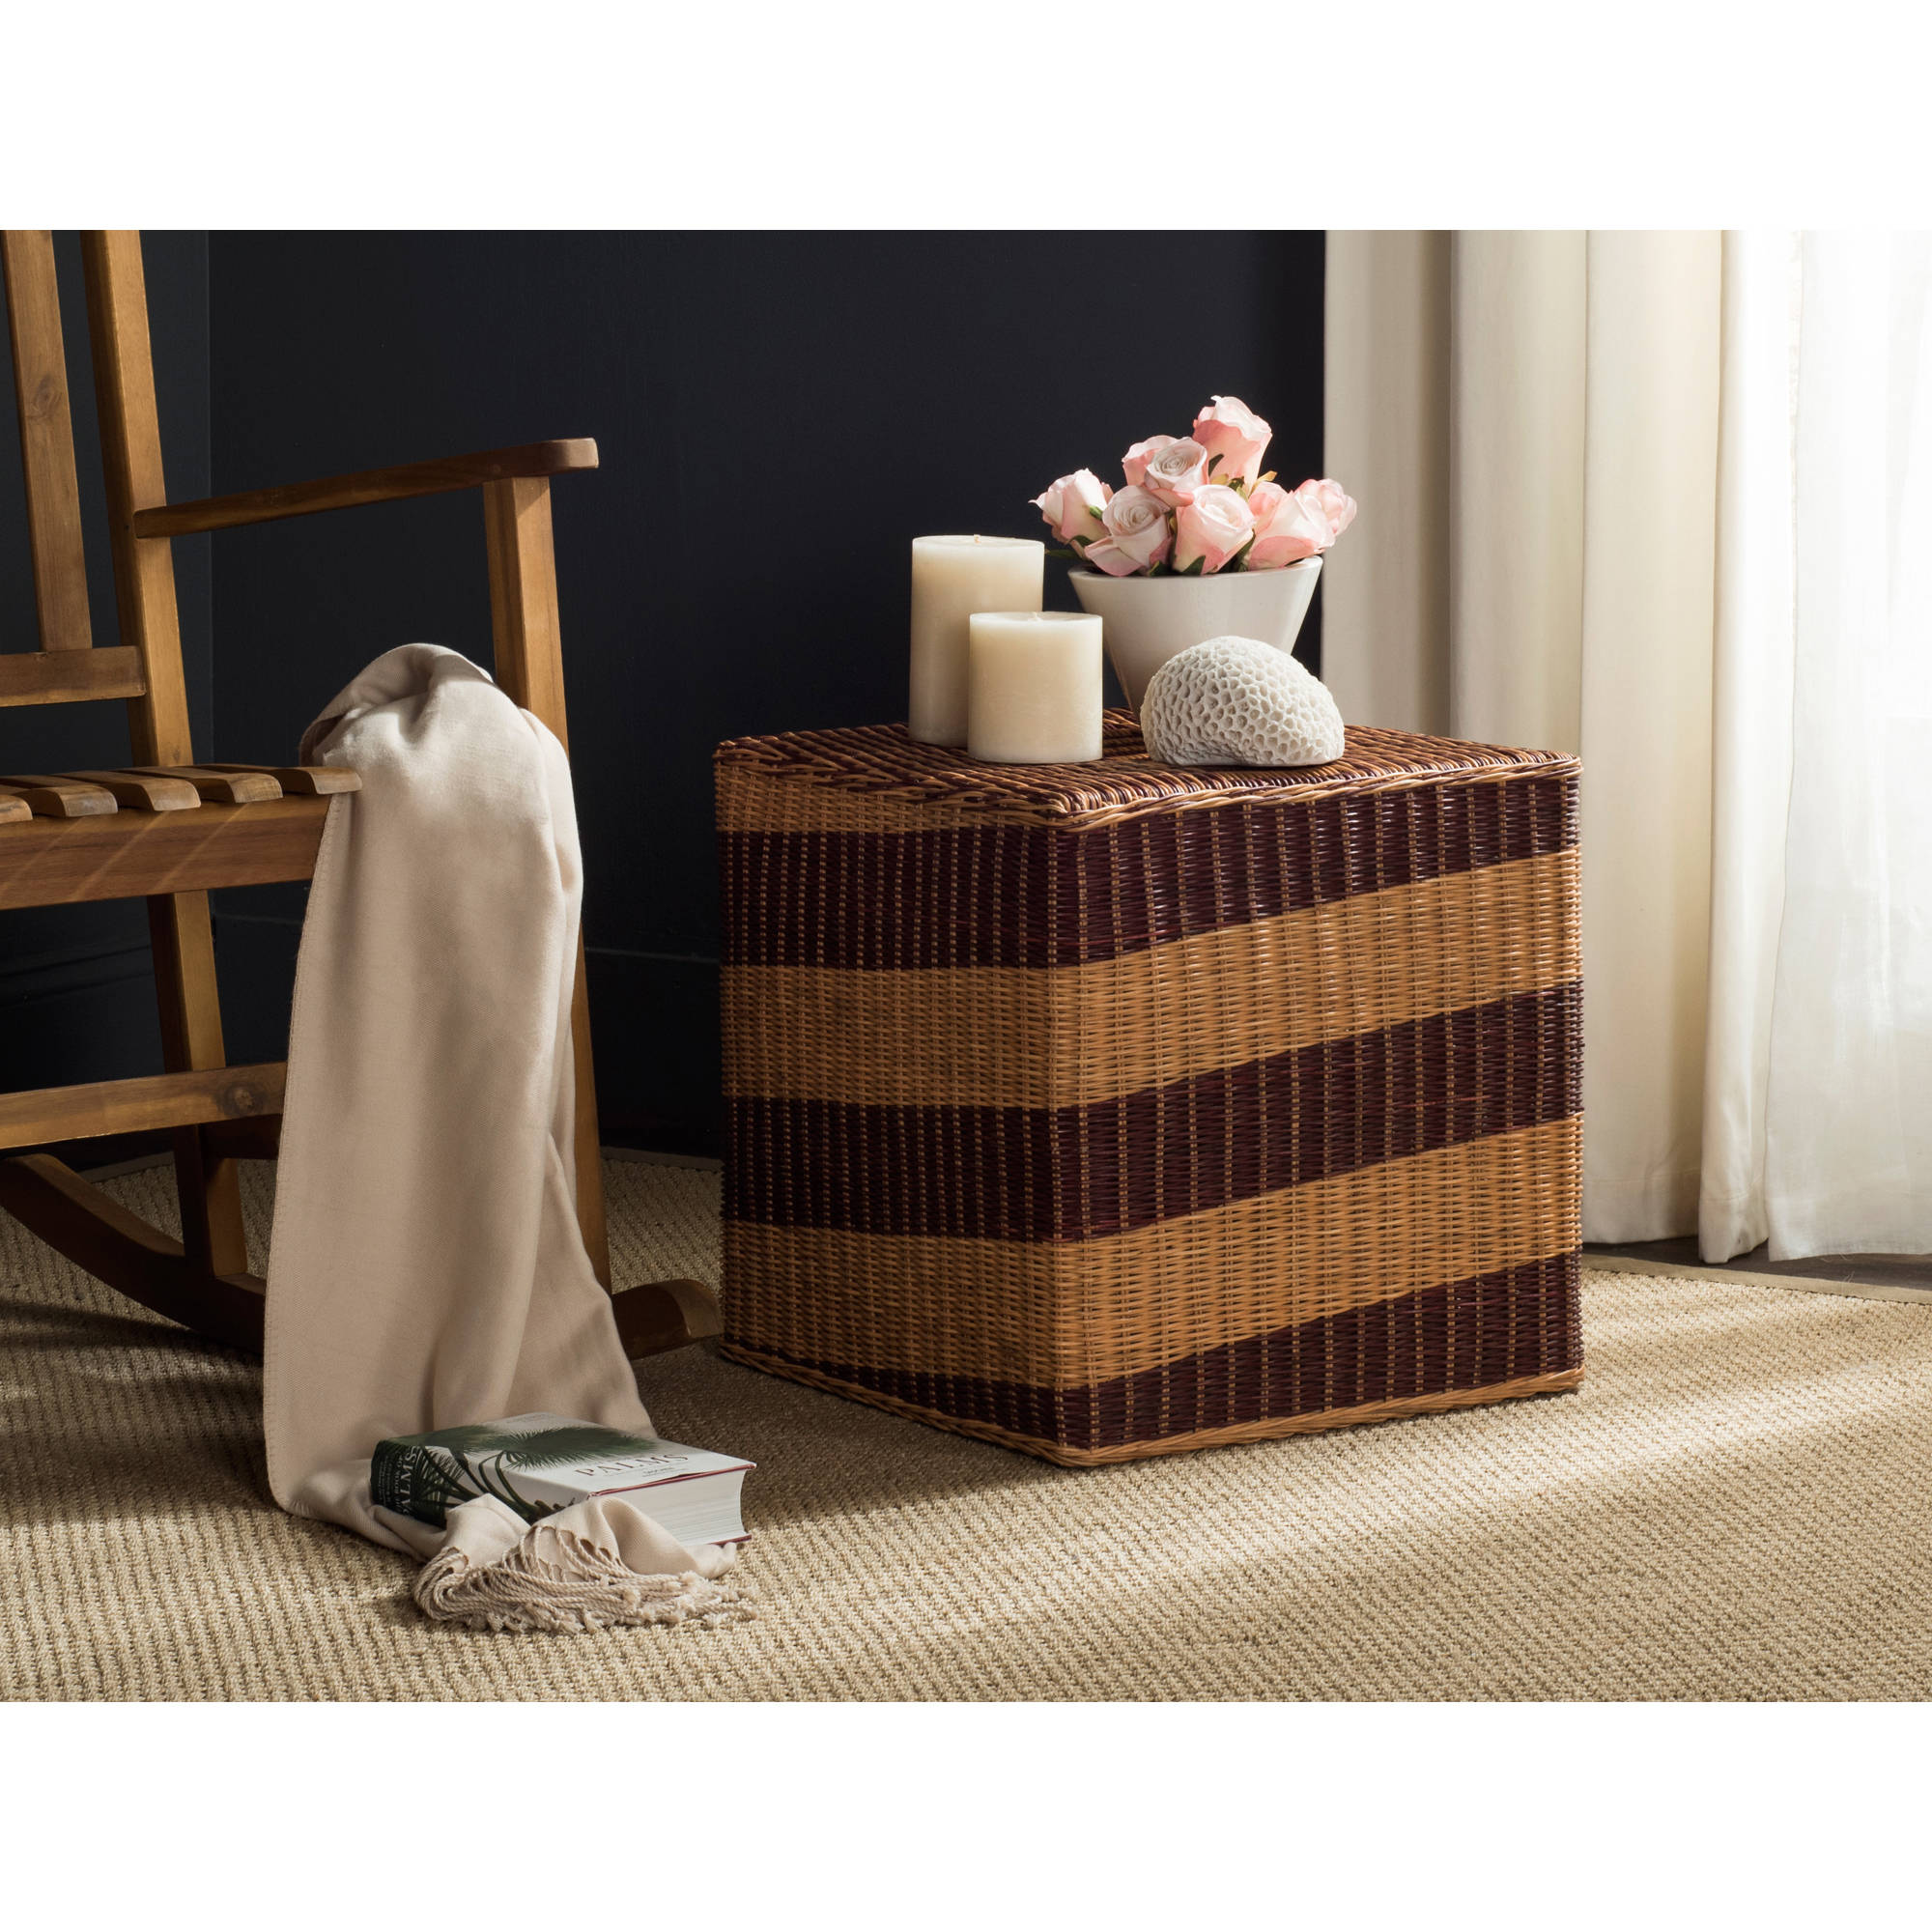 Safavieh Tygo Wicker End Table, Multi